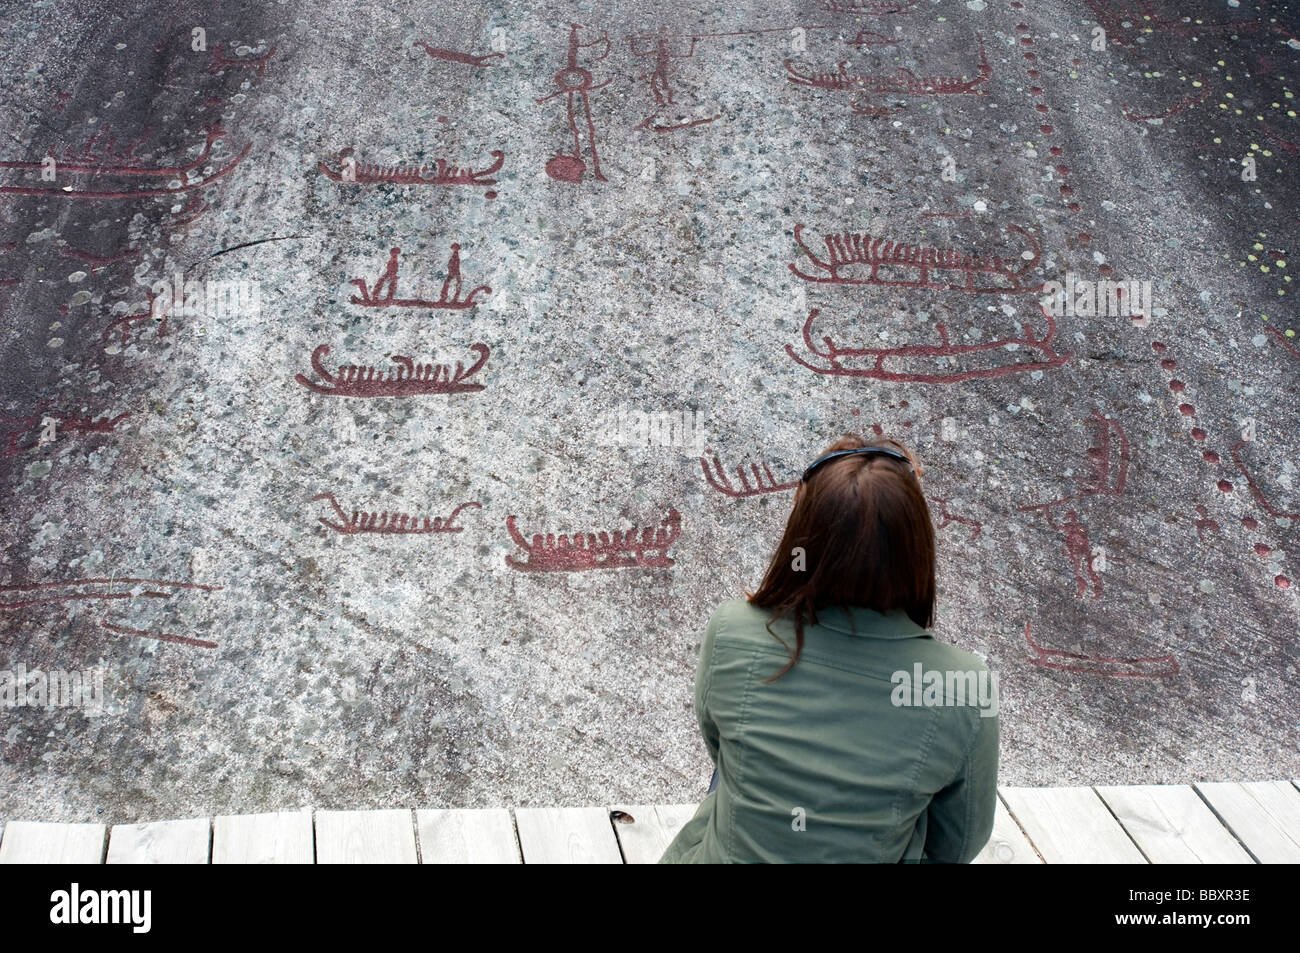 Woman looking at ancient Bronze Age rock carvings at Vitlycke on Tanum plane in Sweden - Stock Image